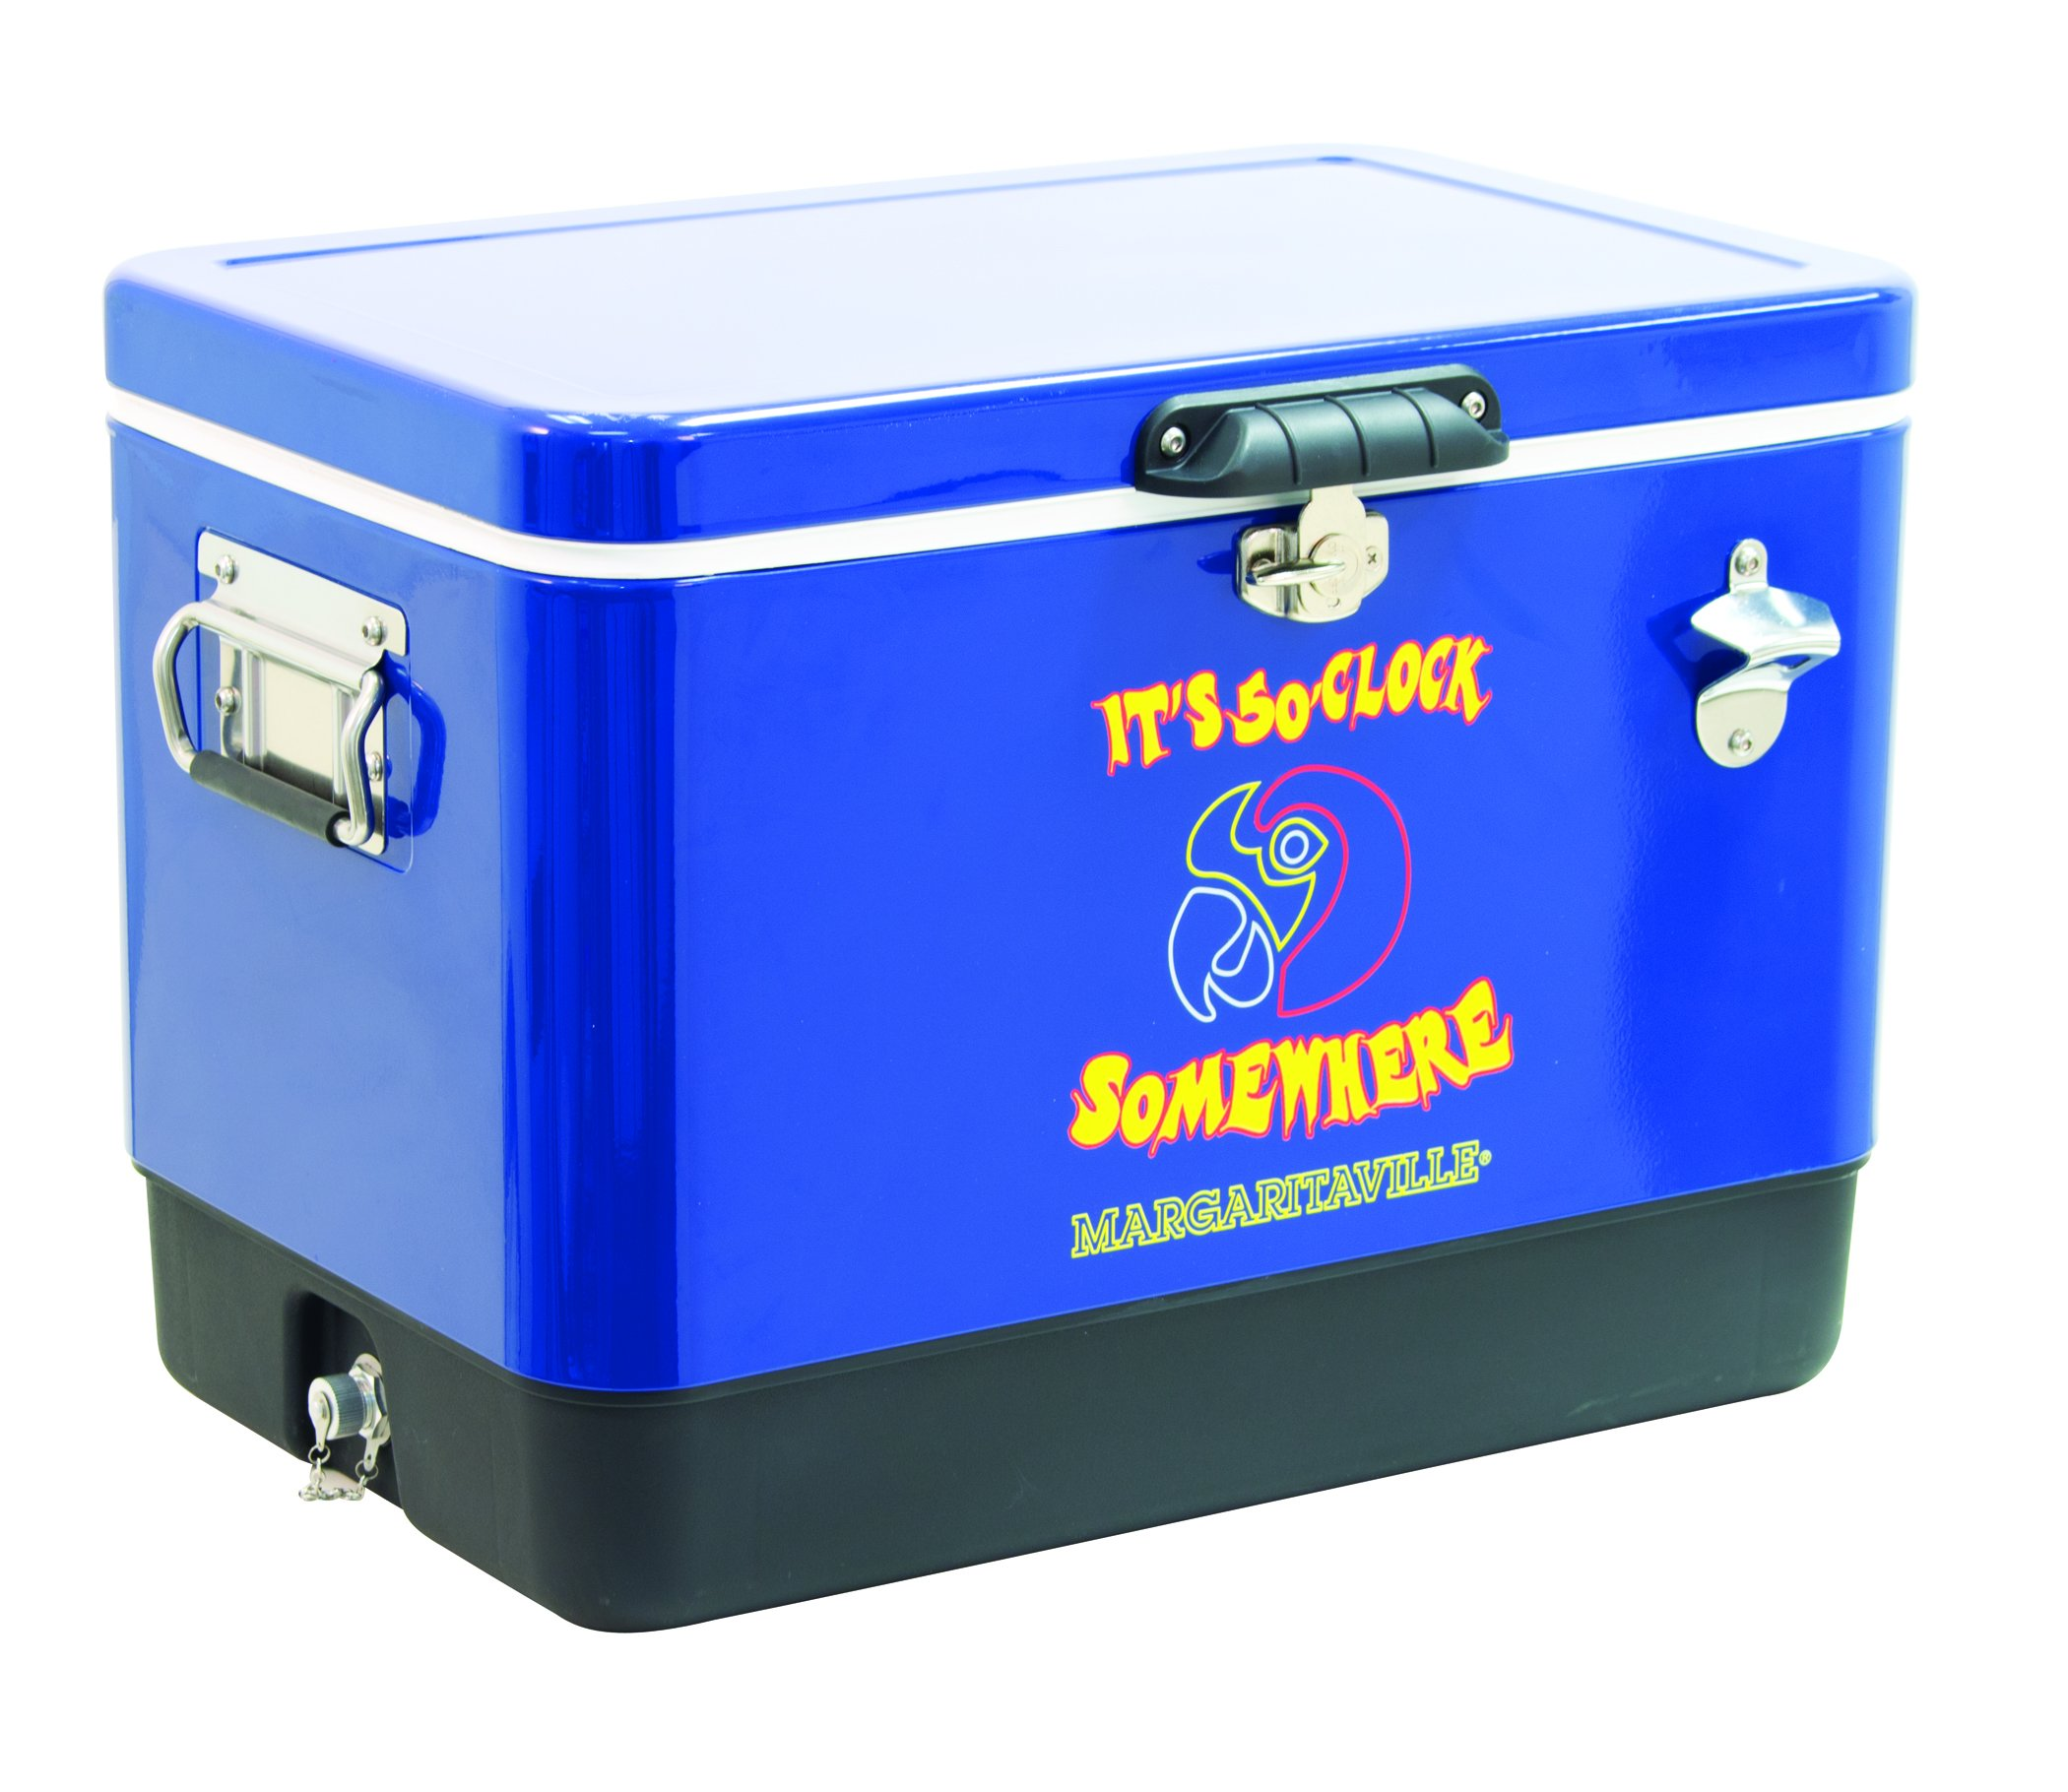 Margaritaville Outdoor ATC54MV-28 Margaritaville It's 5 O'clock Somewhere 54 Quart Steel Portable Bottle Opener Cooler, Blue by Margaritaville Outdoor (Image #1)